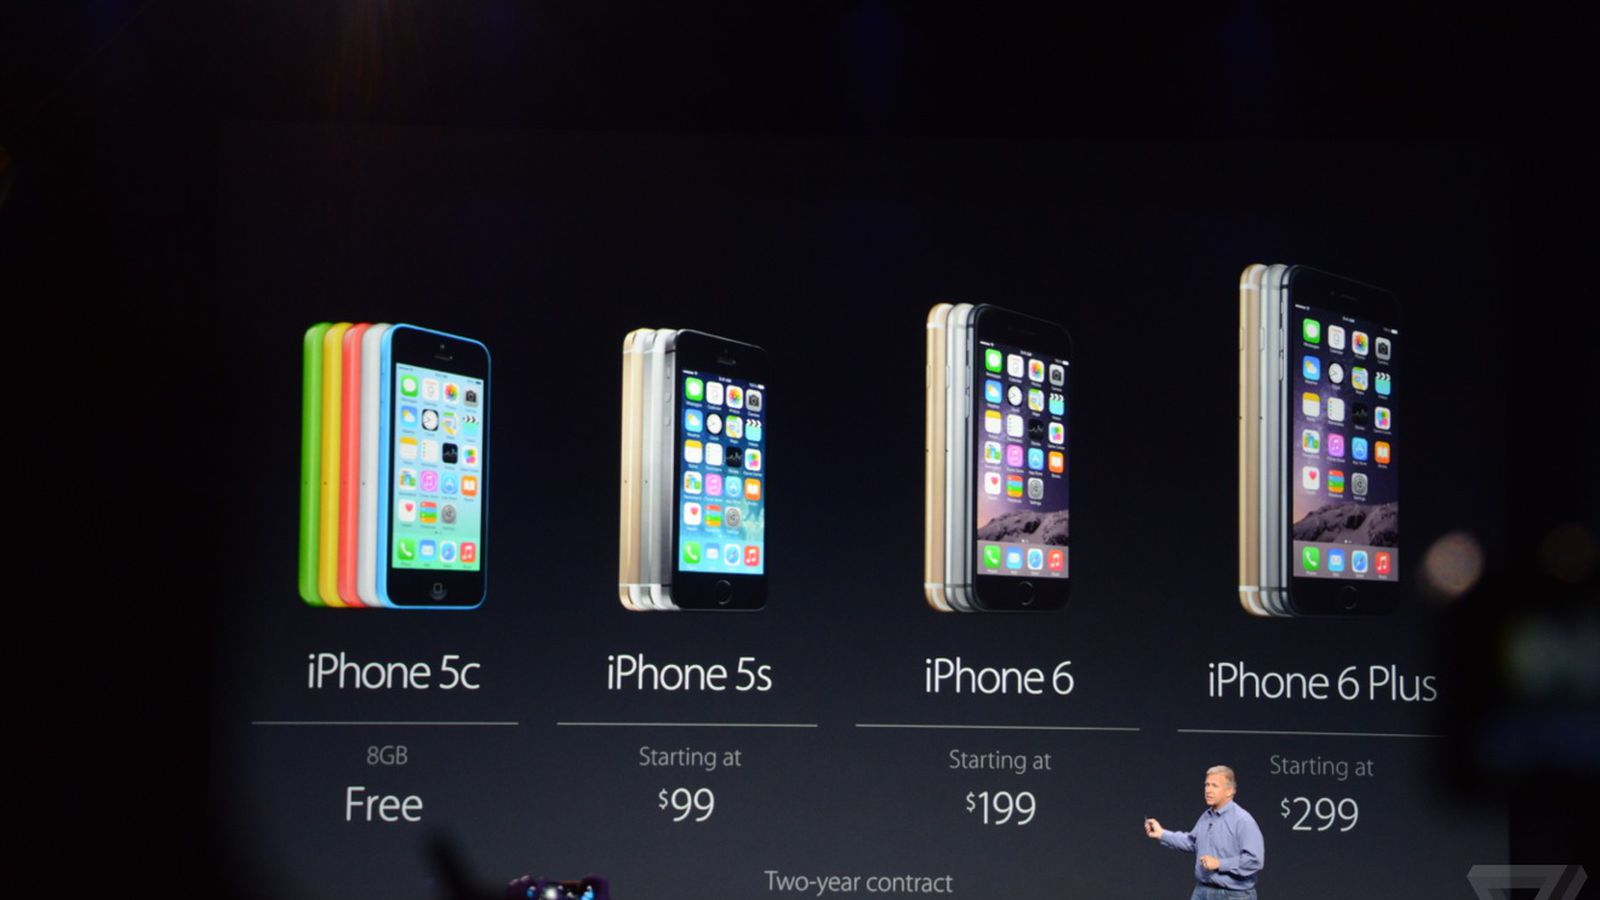 iphone 5s for free apple drops iphone 5s price to 99 makes iphone 5c its 14797